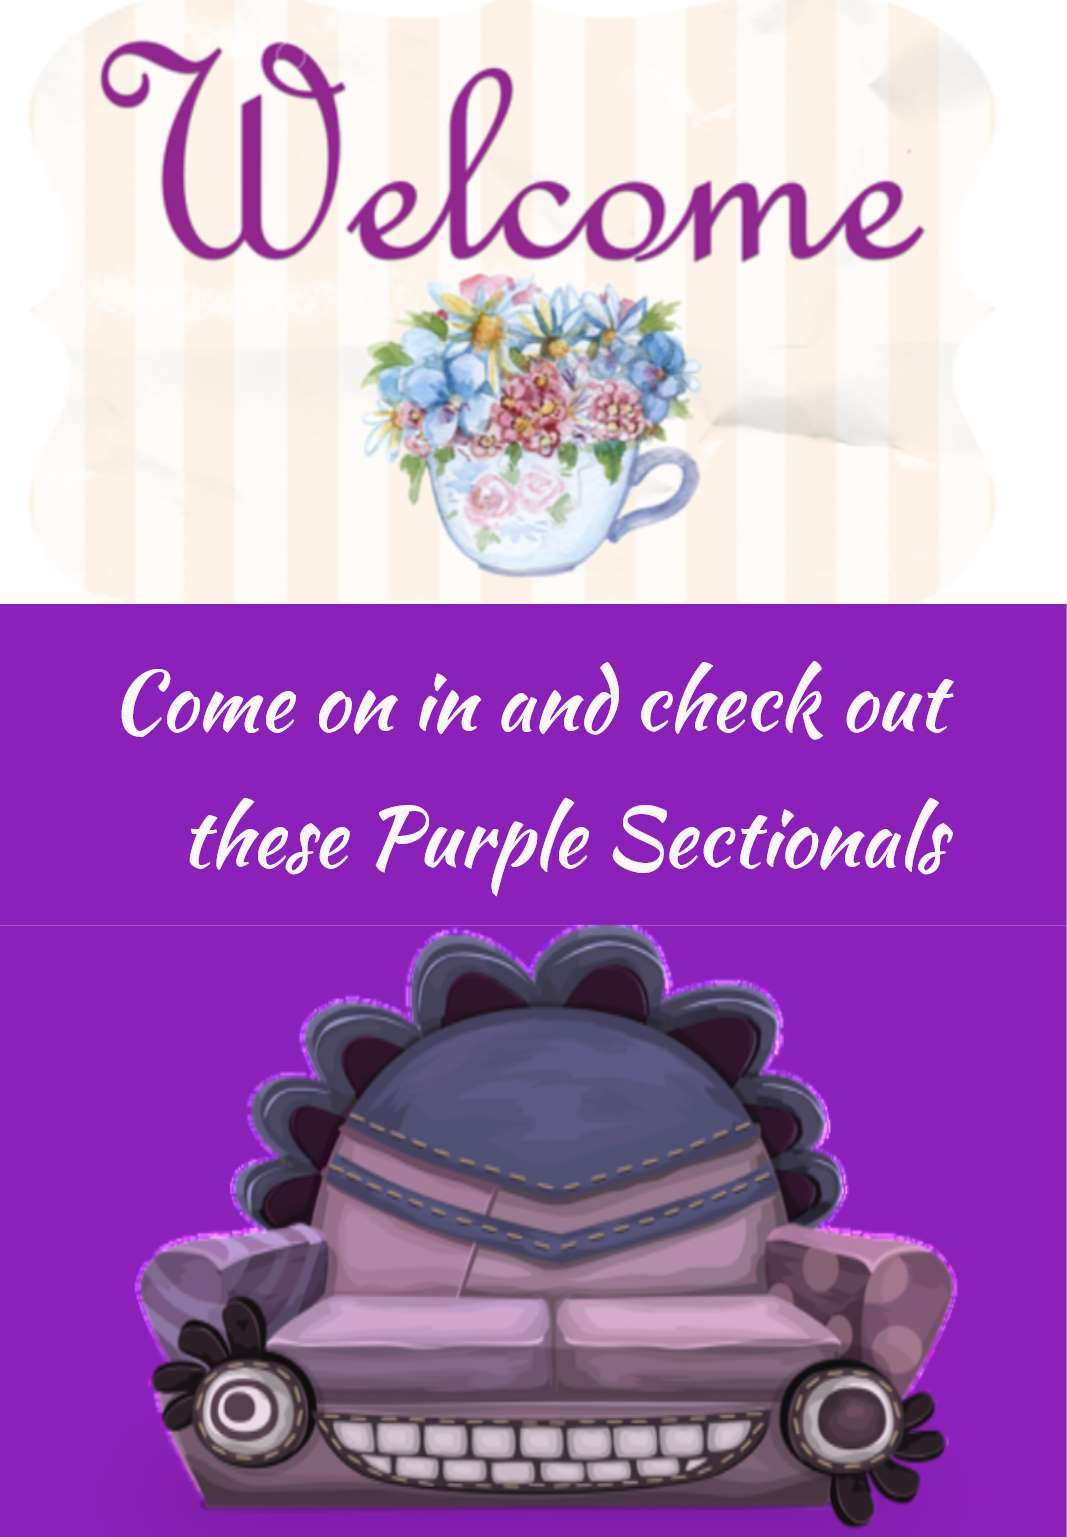 Check Out This Selection of Purple Selections